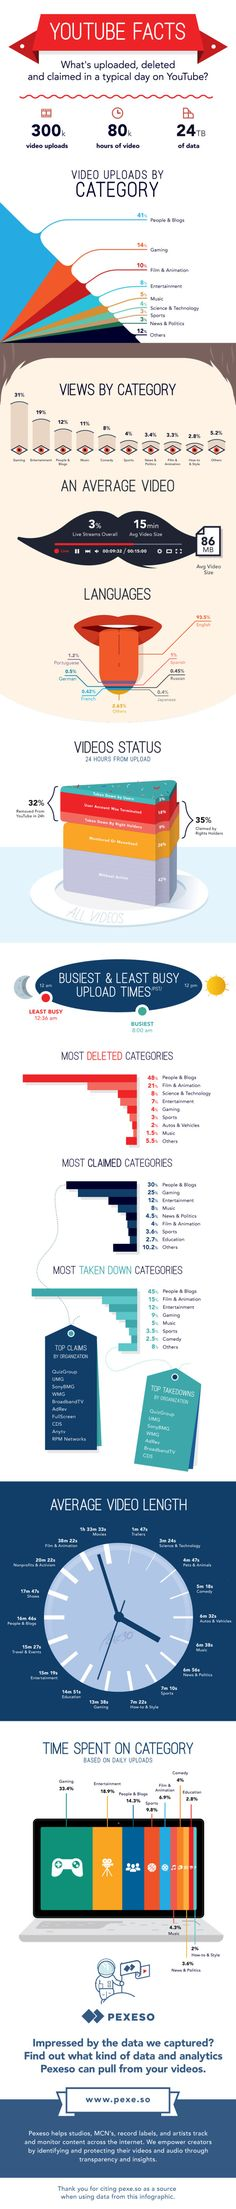 What Happens On YouTube in 24 Hours? infographic